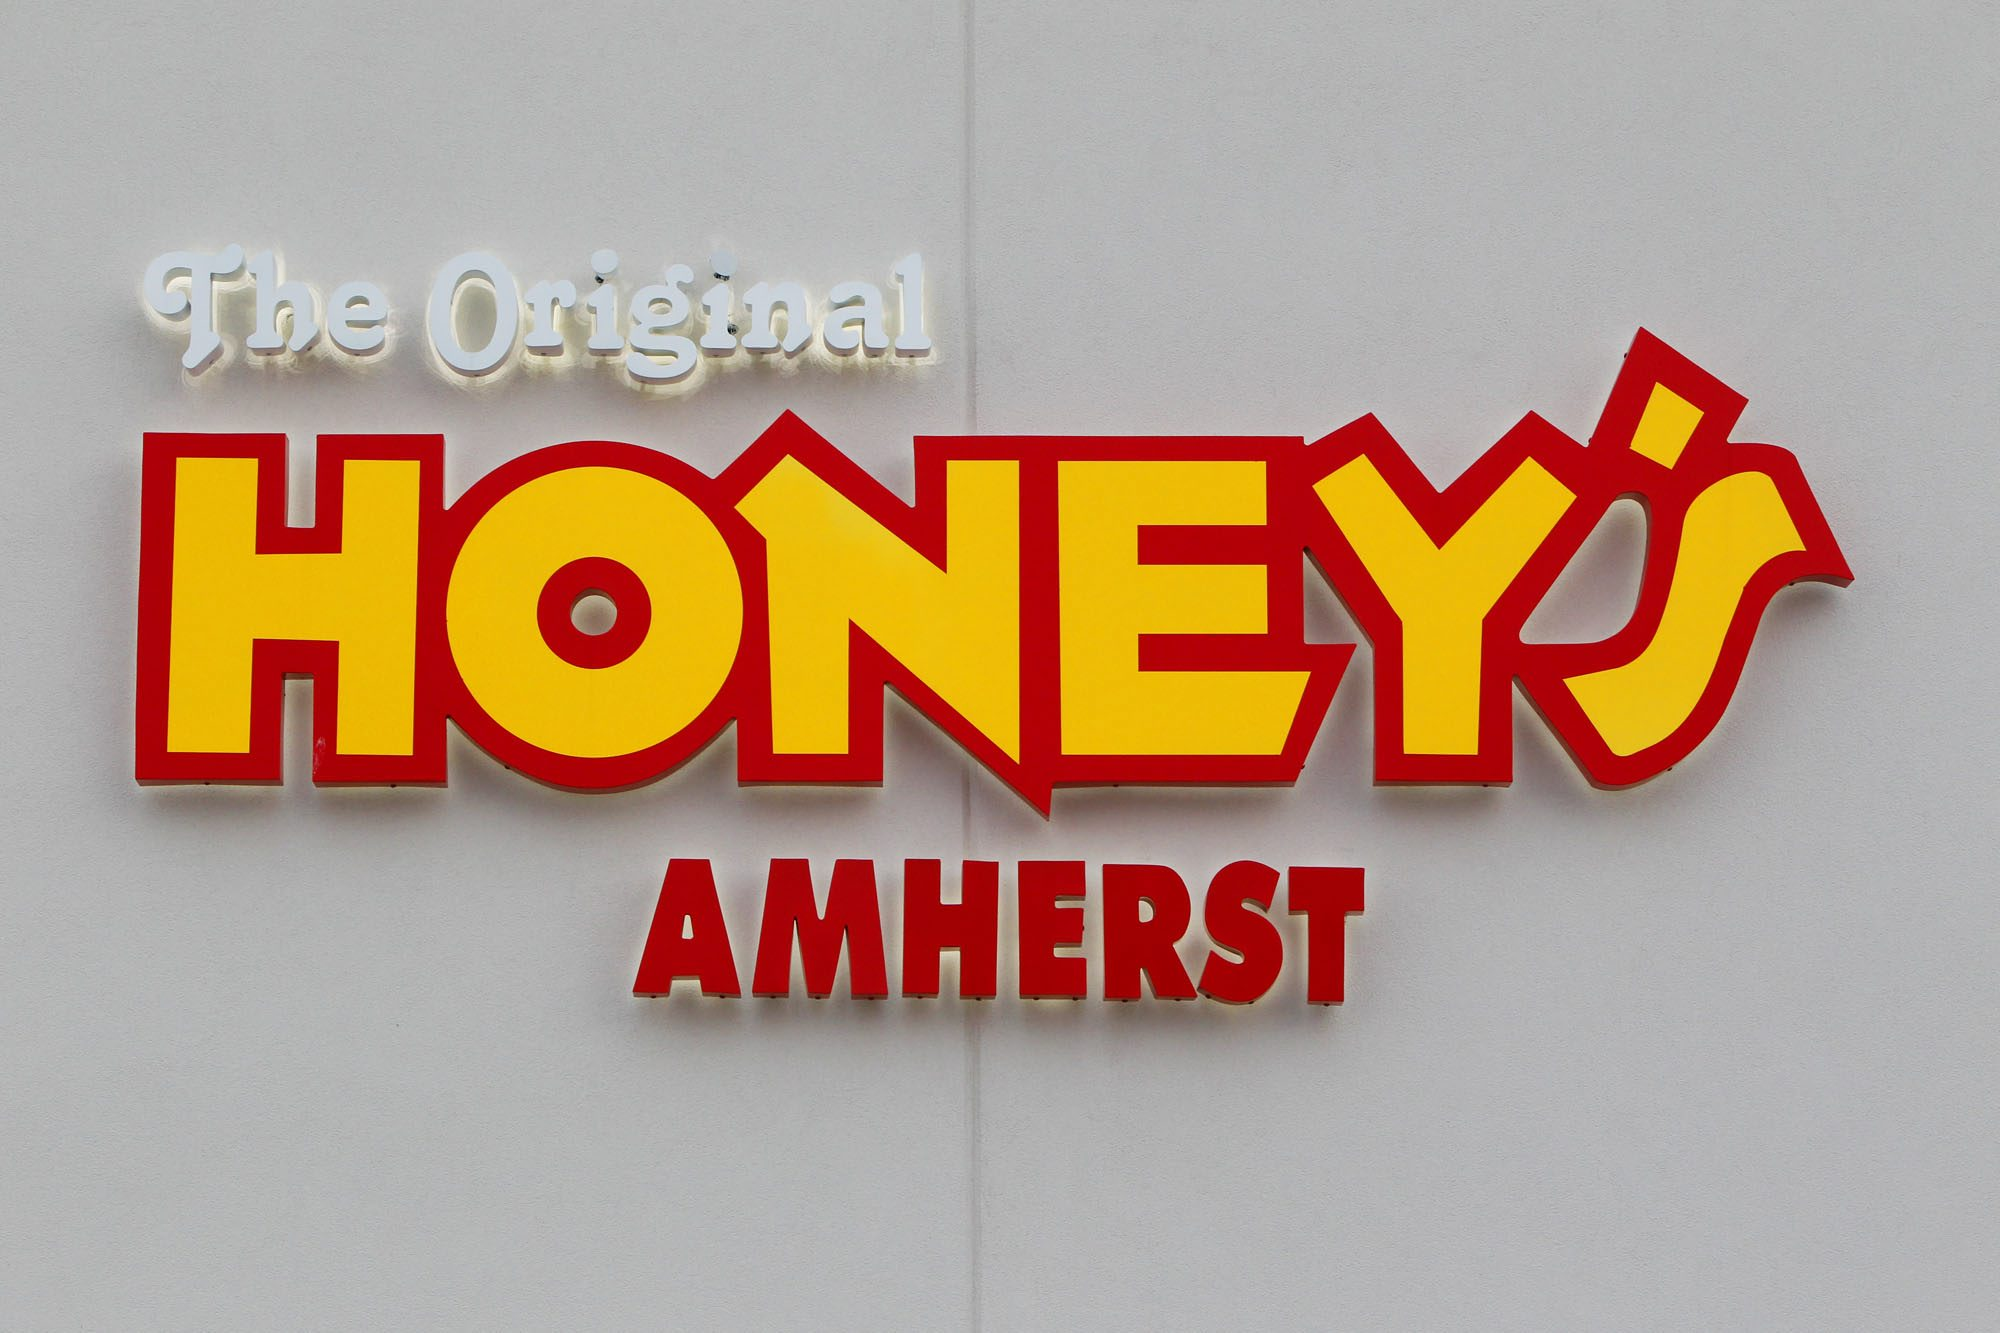 Sign that marked the Original Honey's Amherst restaurant at the Boulevard Mall, which closed in 2013 and was the subject of a lawsuit filed by the mall's owner.